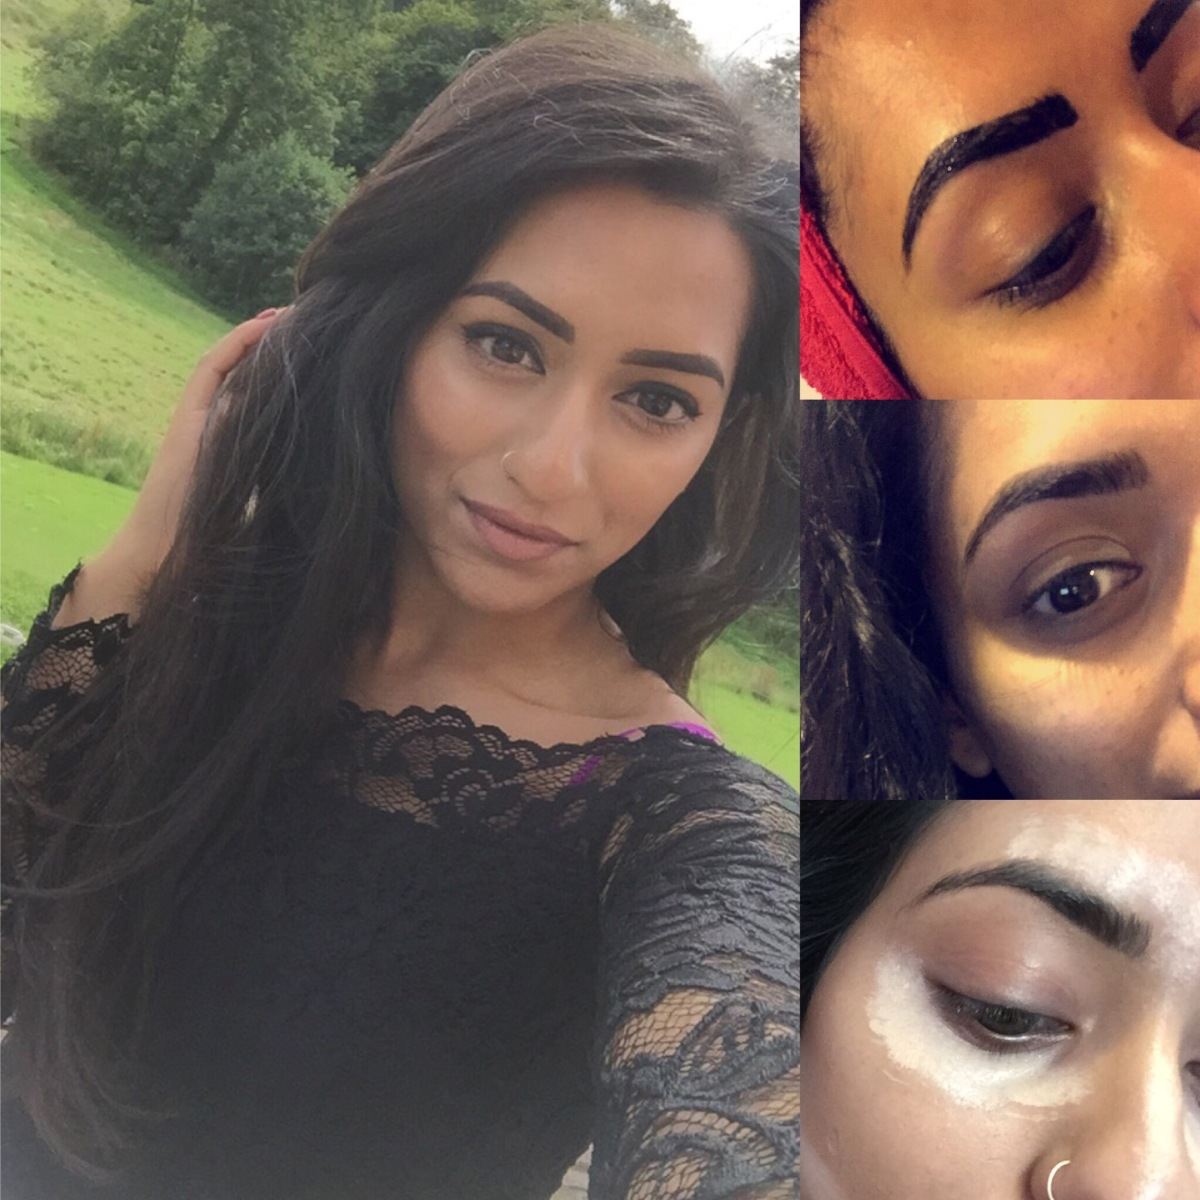 Beauty post: HD brows